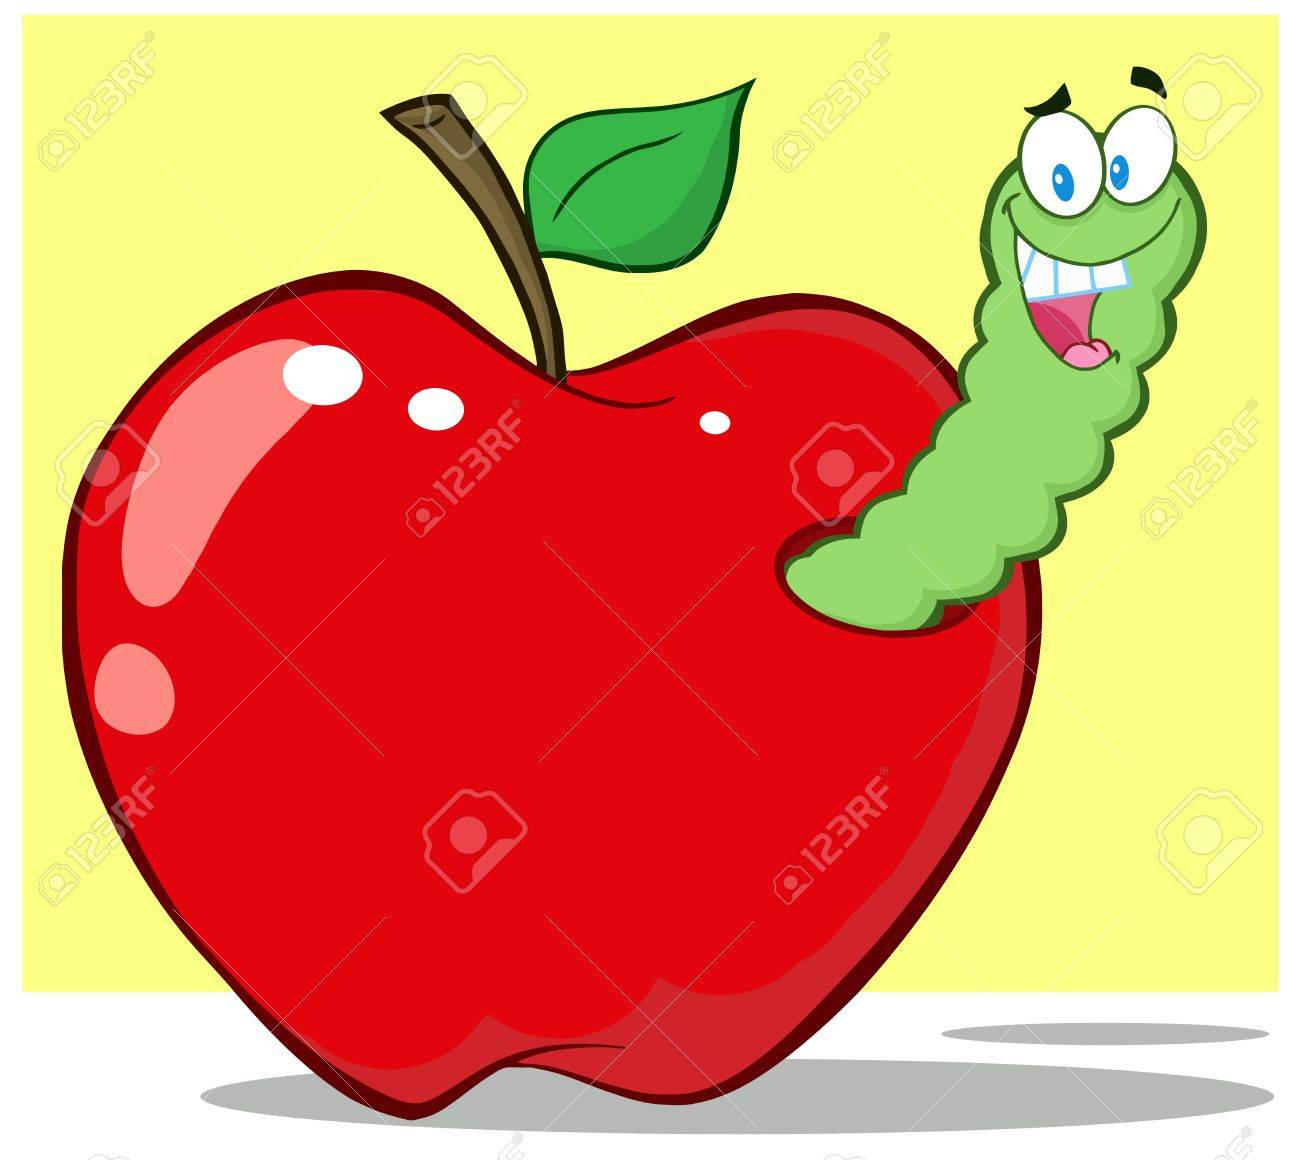 Smiling Worm In Red Apple Stock Vector - 14758372